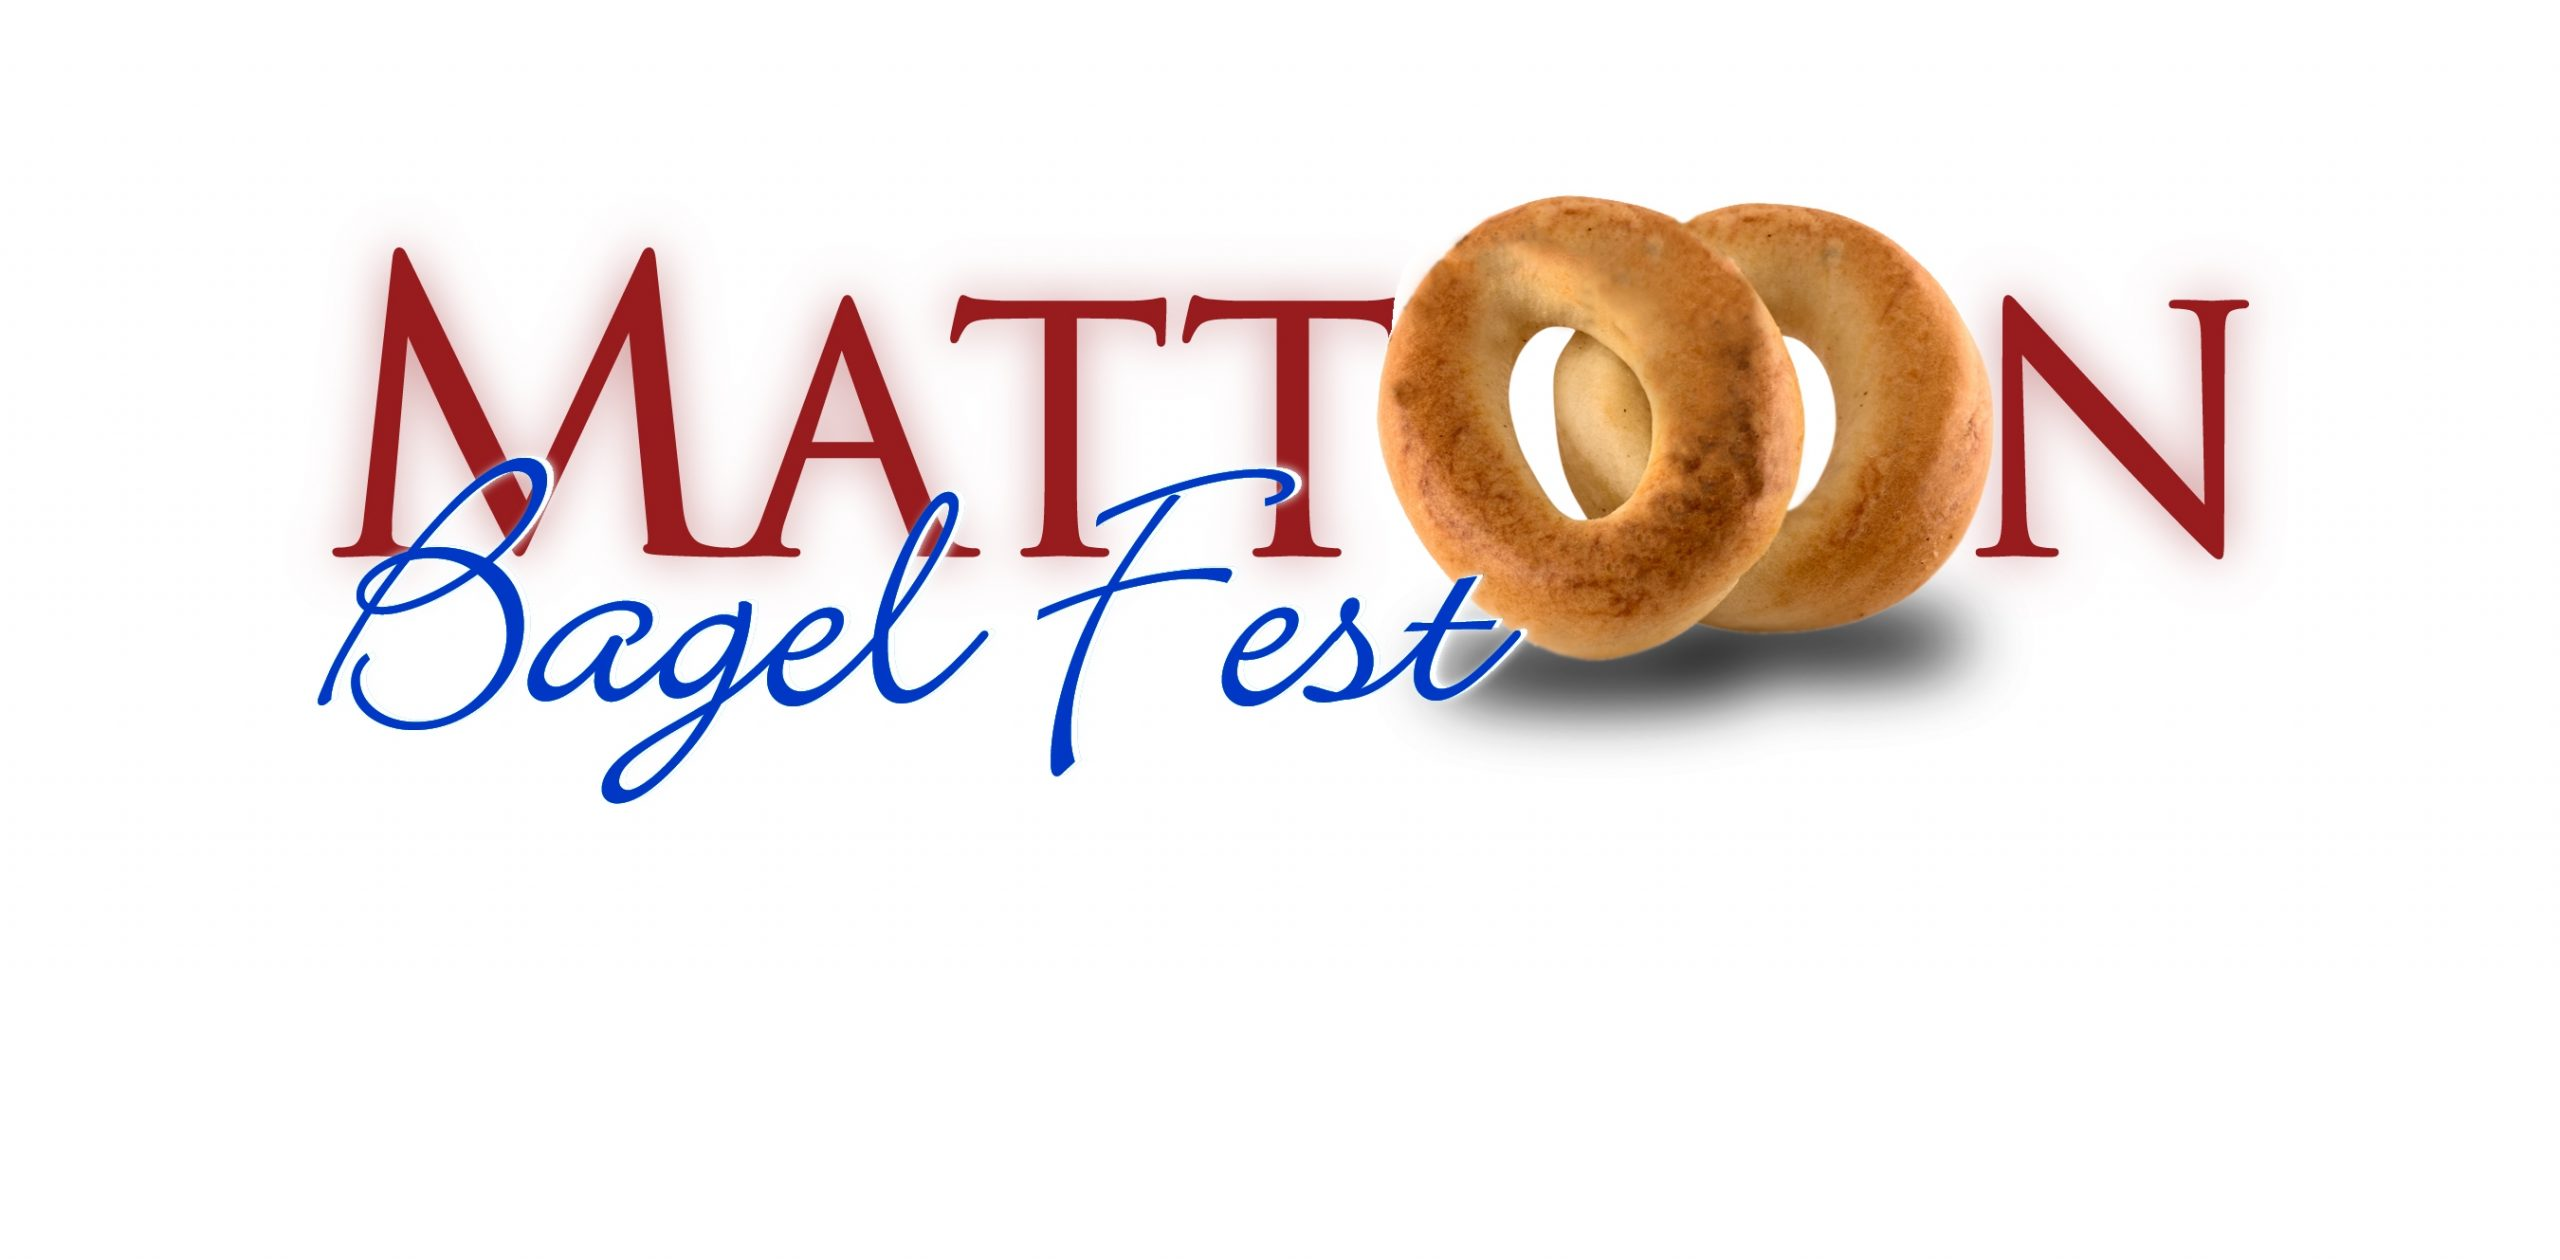 Mattoon Bagelfest Kickoff